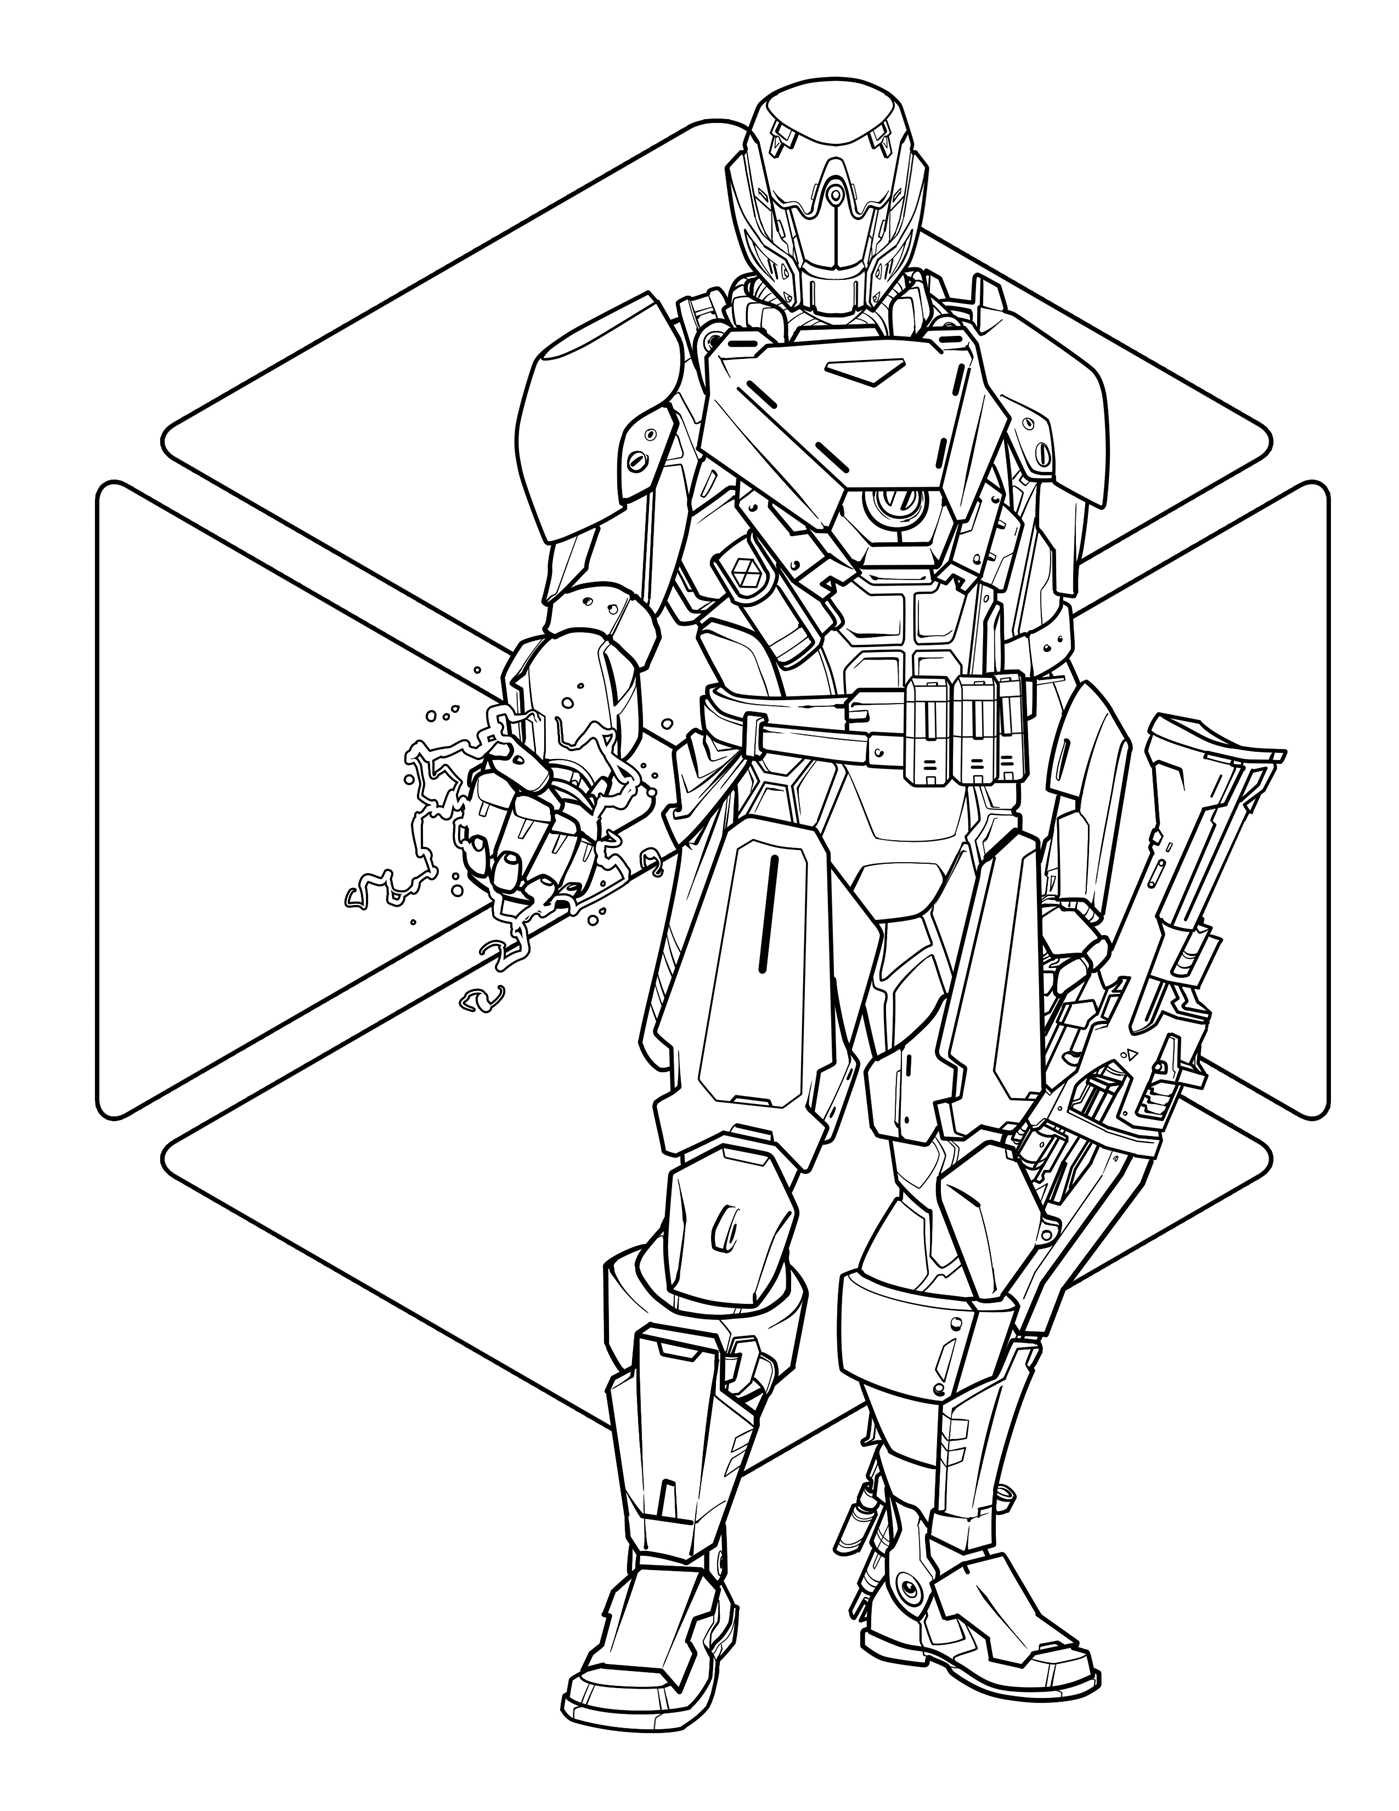 destiny characters hunter coloring pages - photo#14